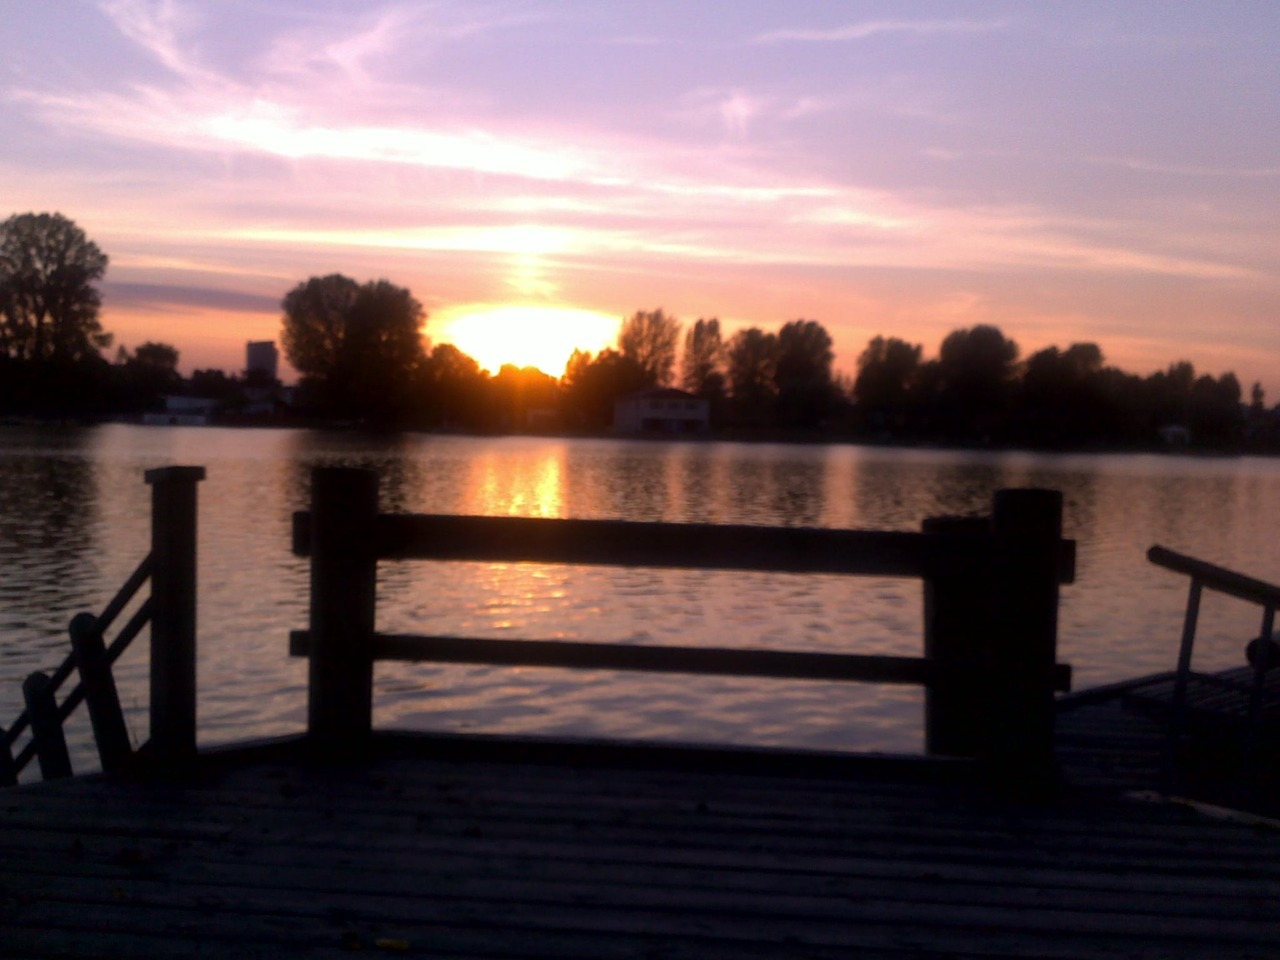 performmonkey:  Alte Donau in an autumn sunset.